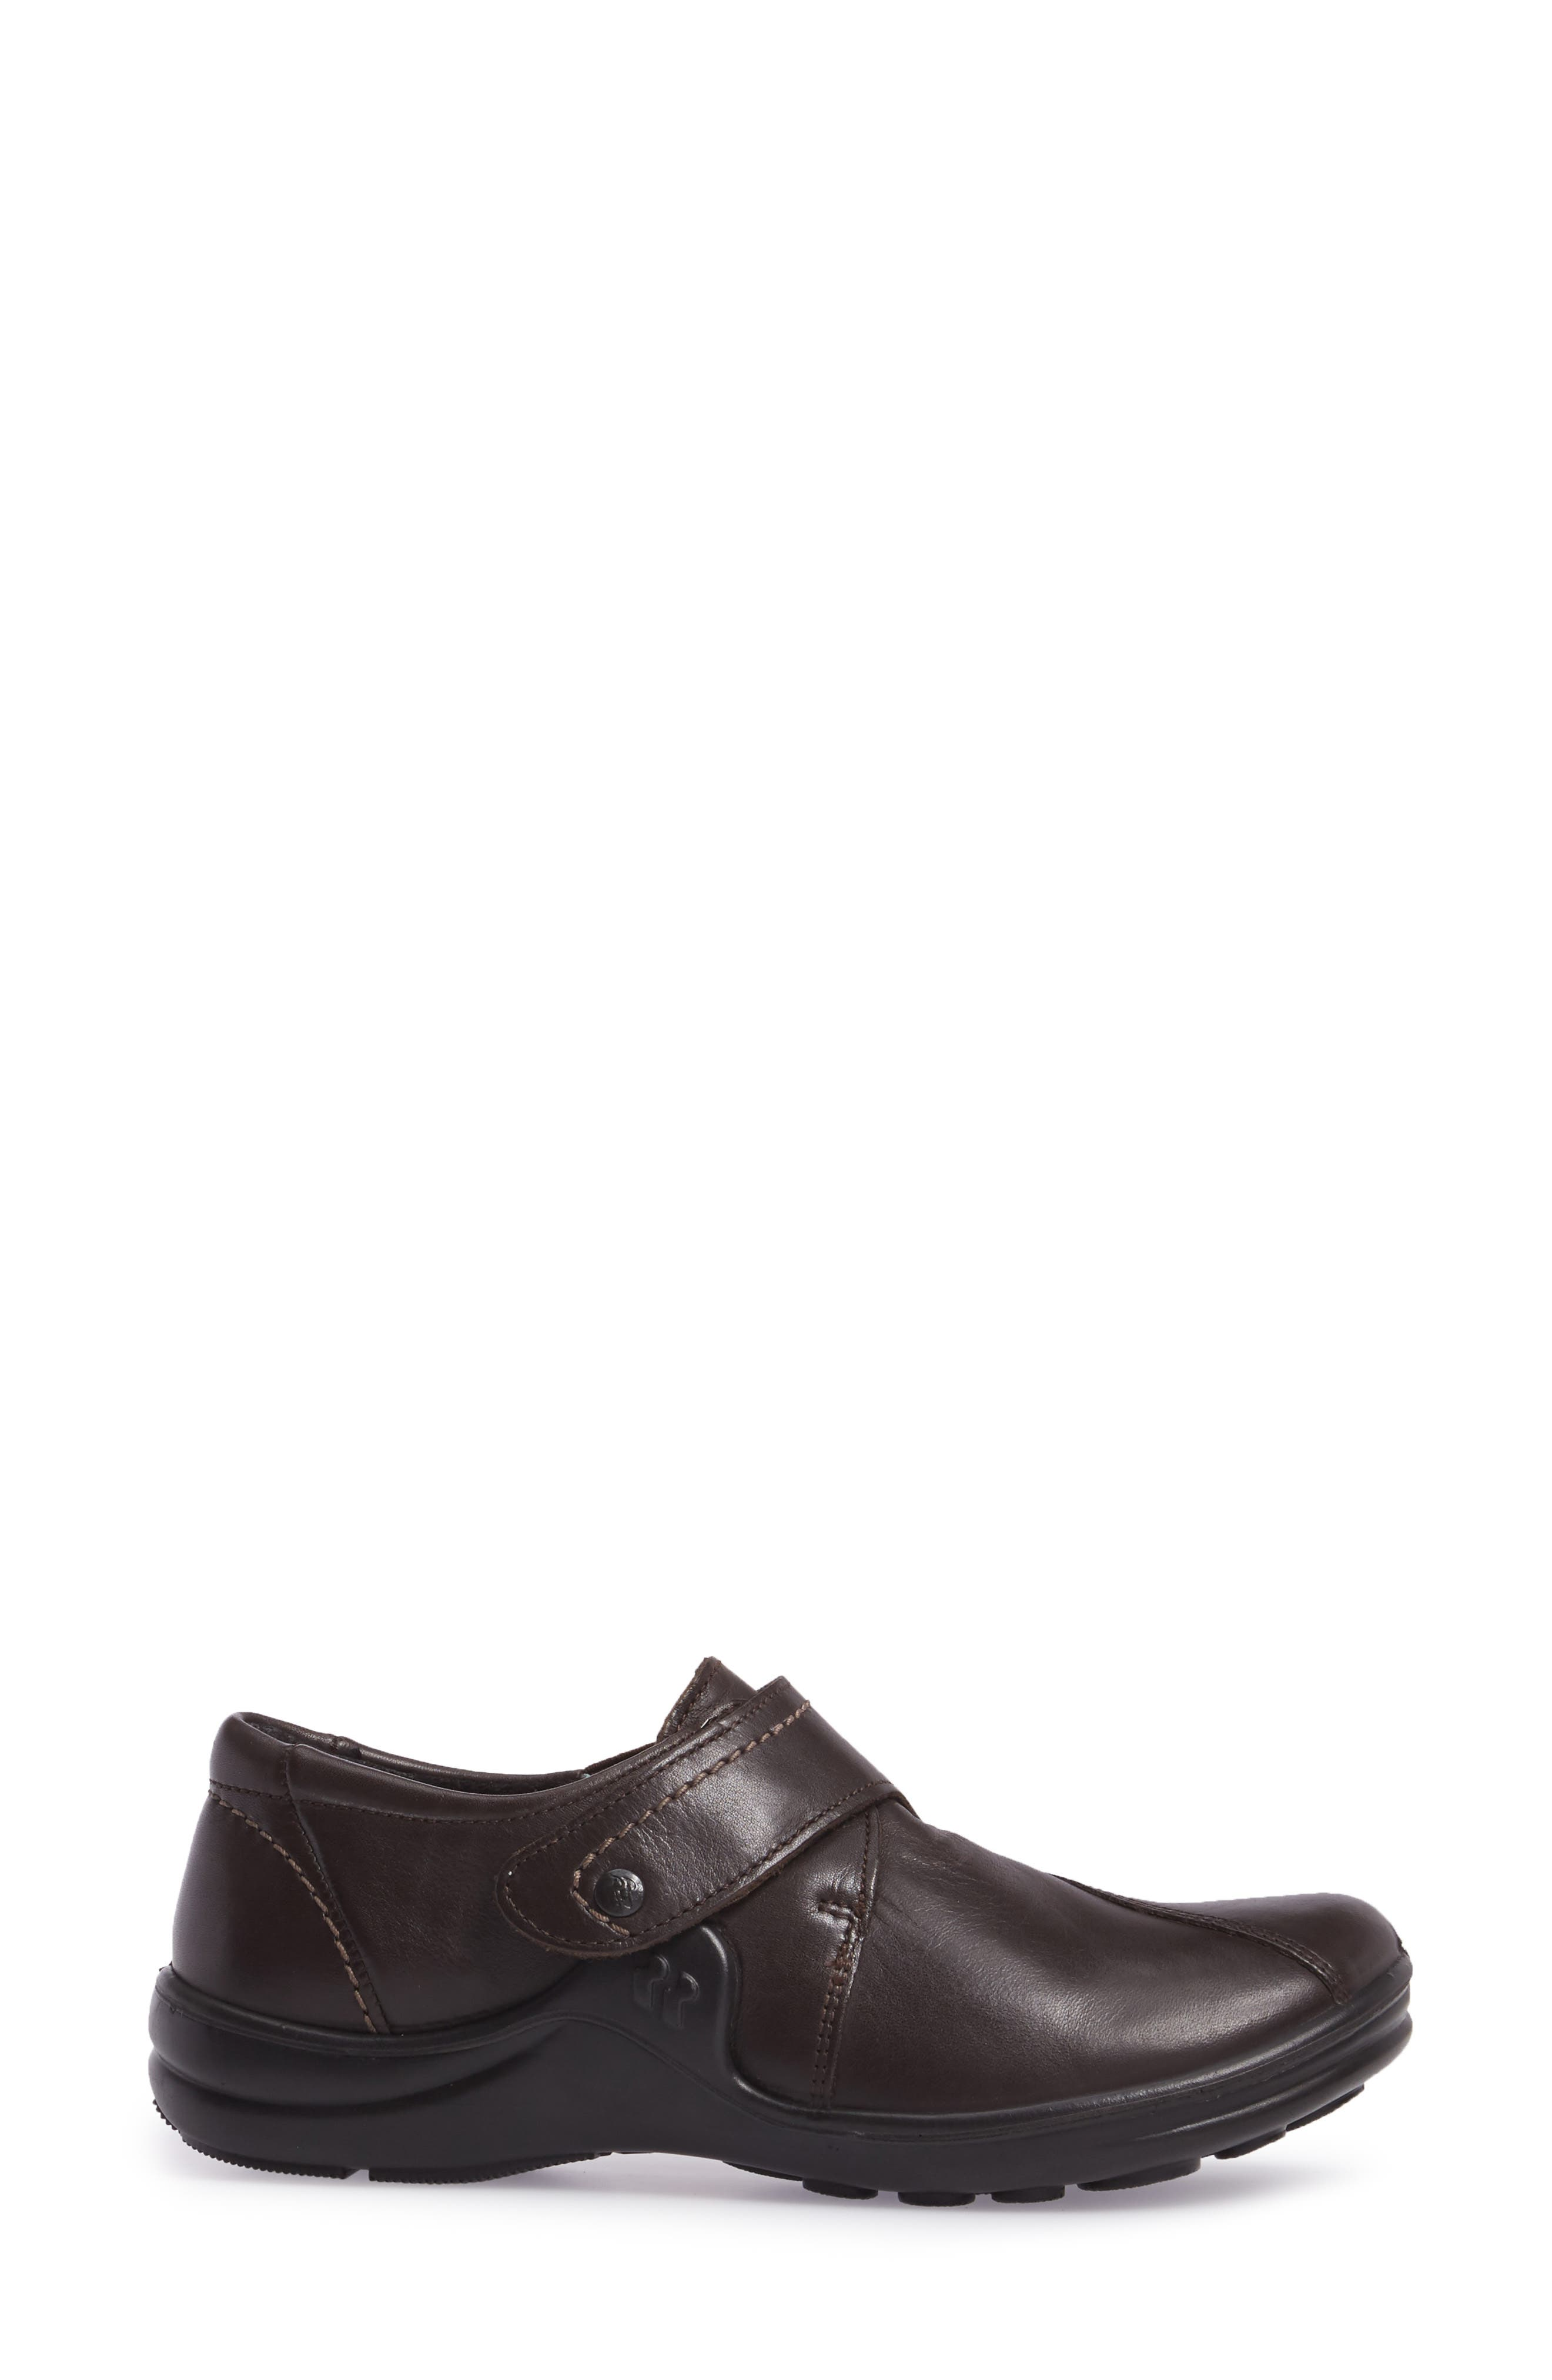 'Maddy 04' Slip-On Flat,                             Alternate thumbnail 3, color,                             Moro Leather